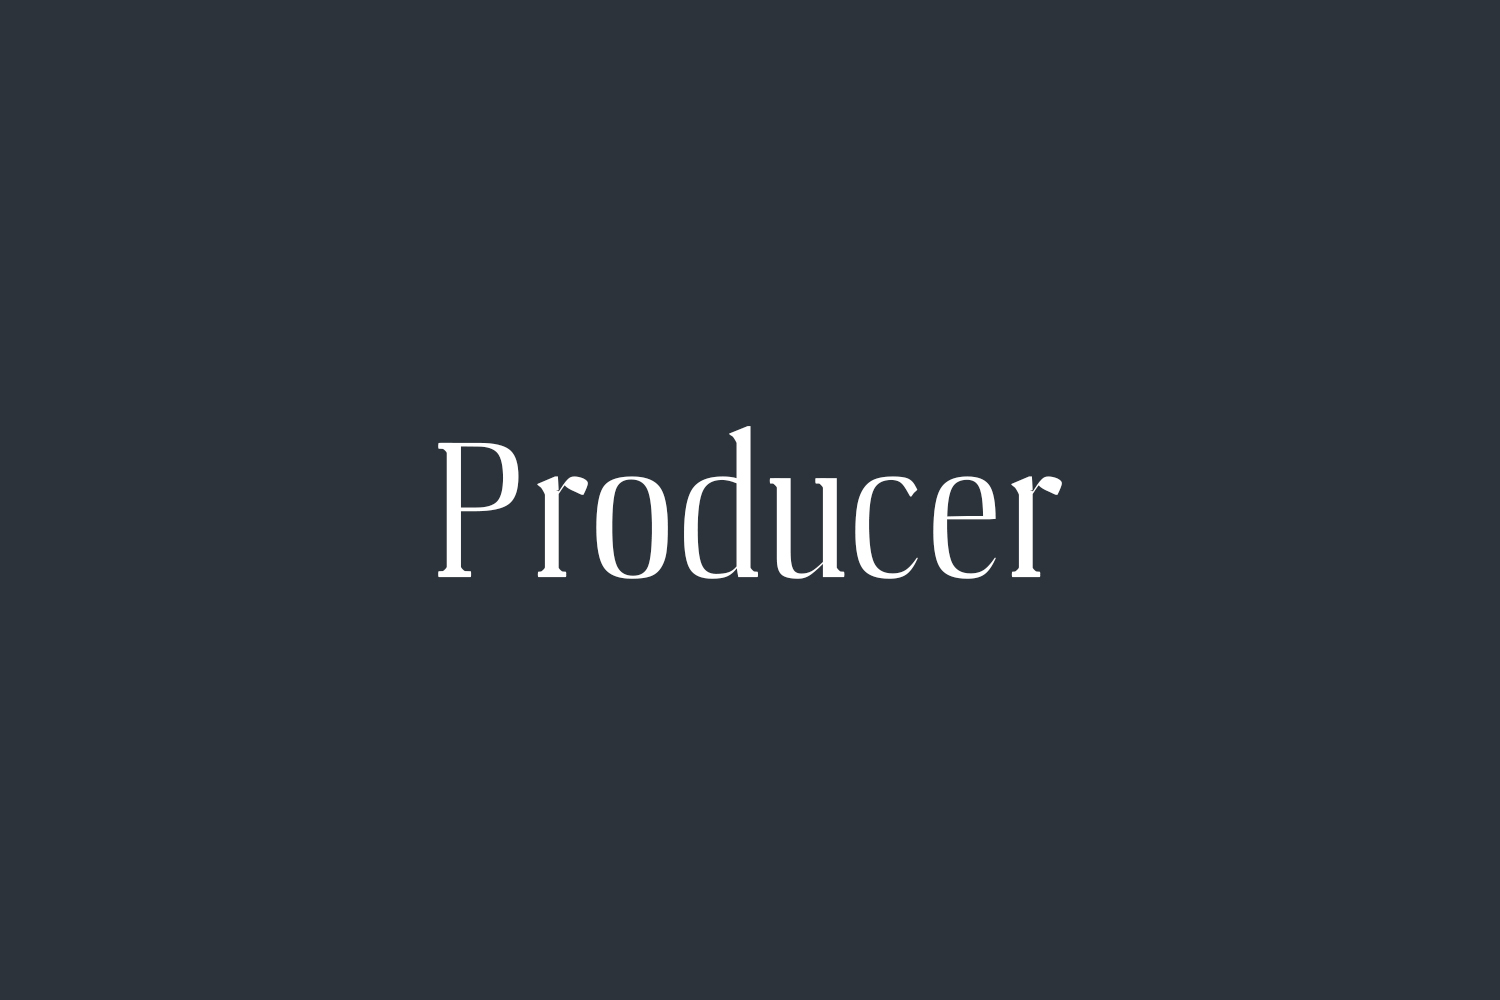 Producer Free Font